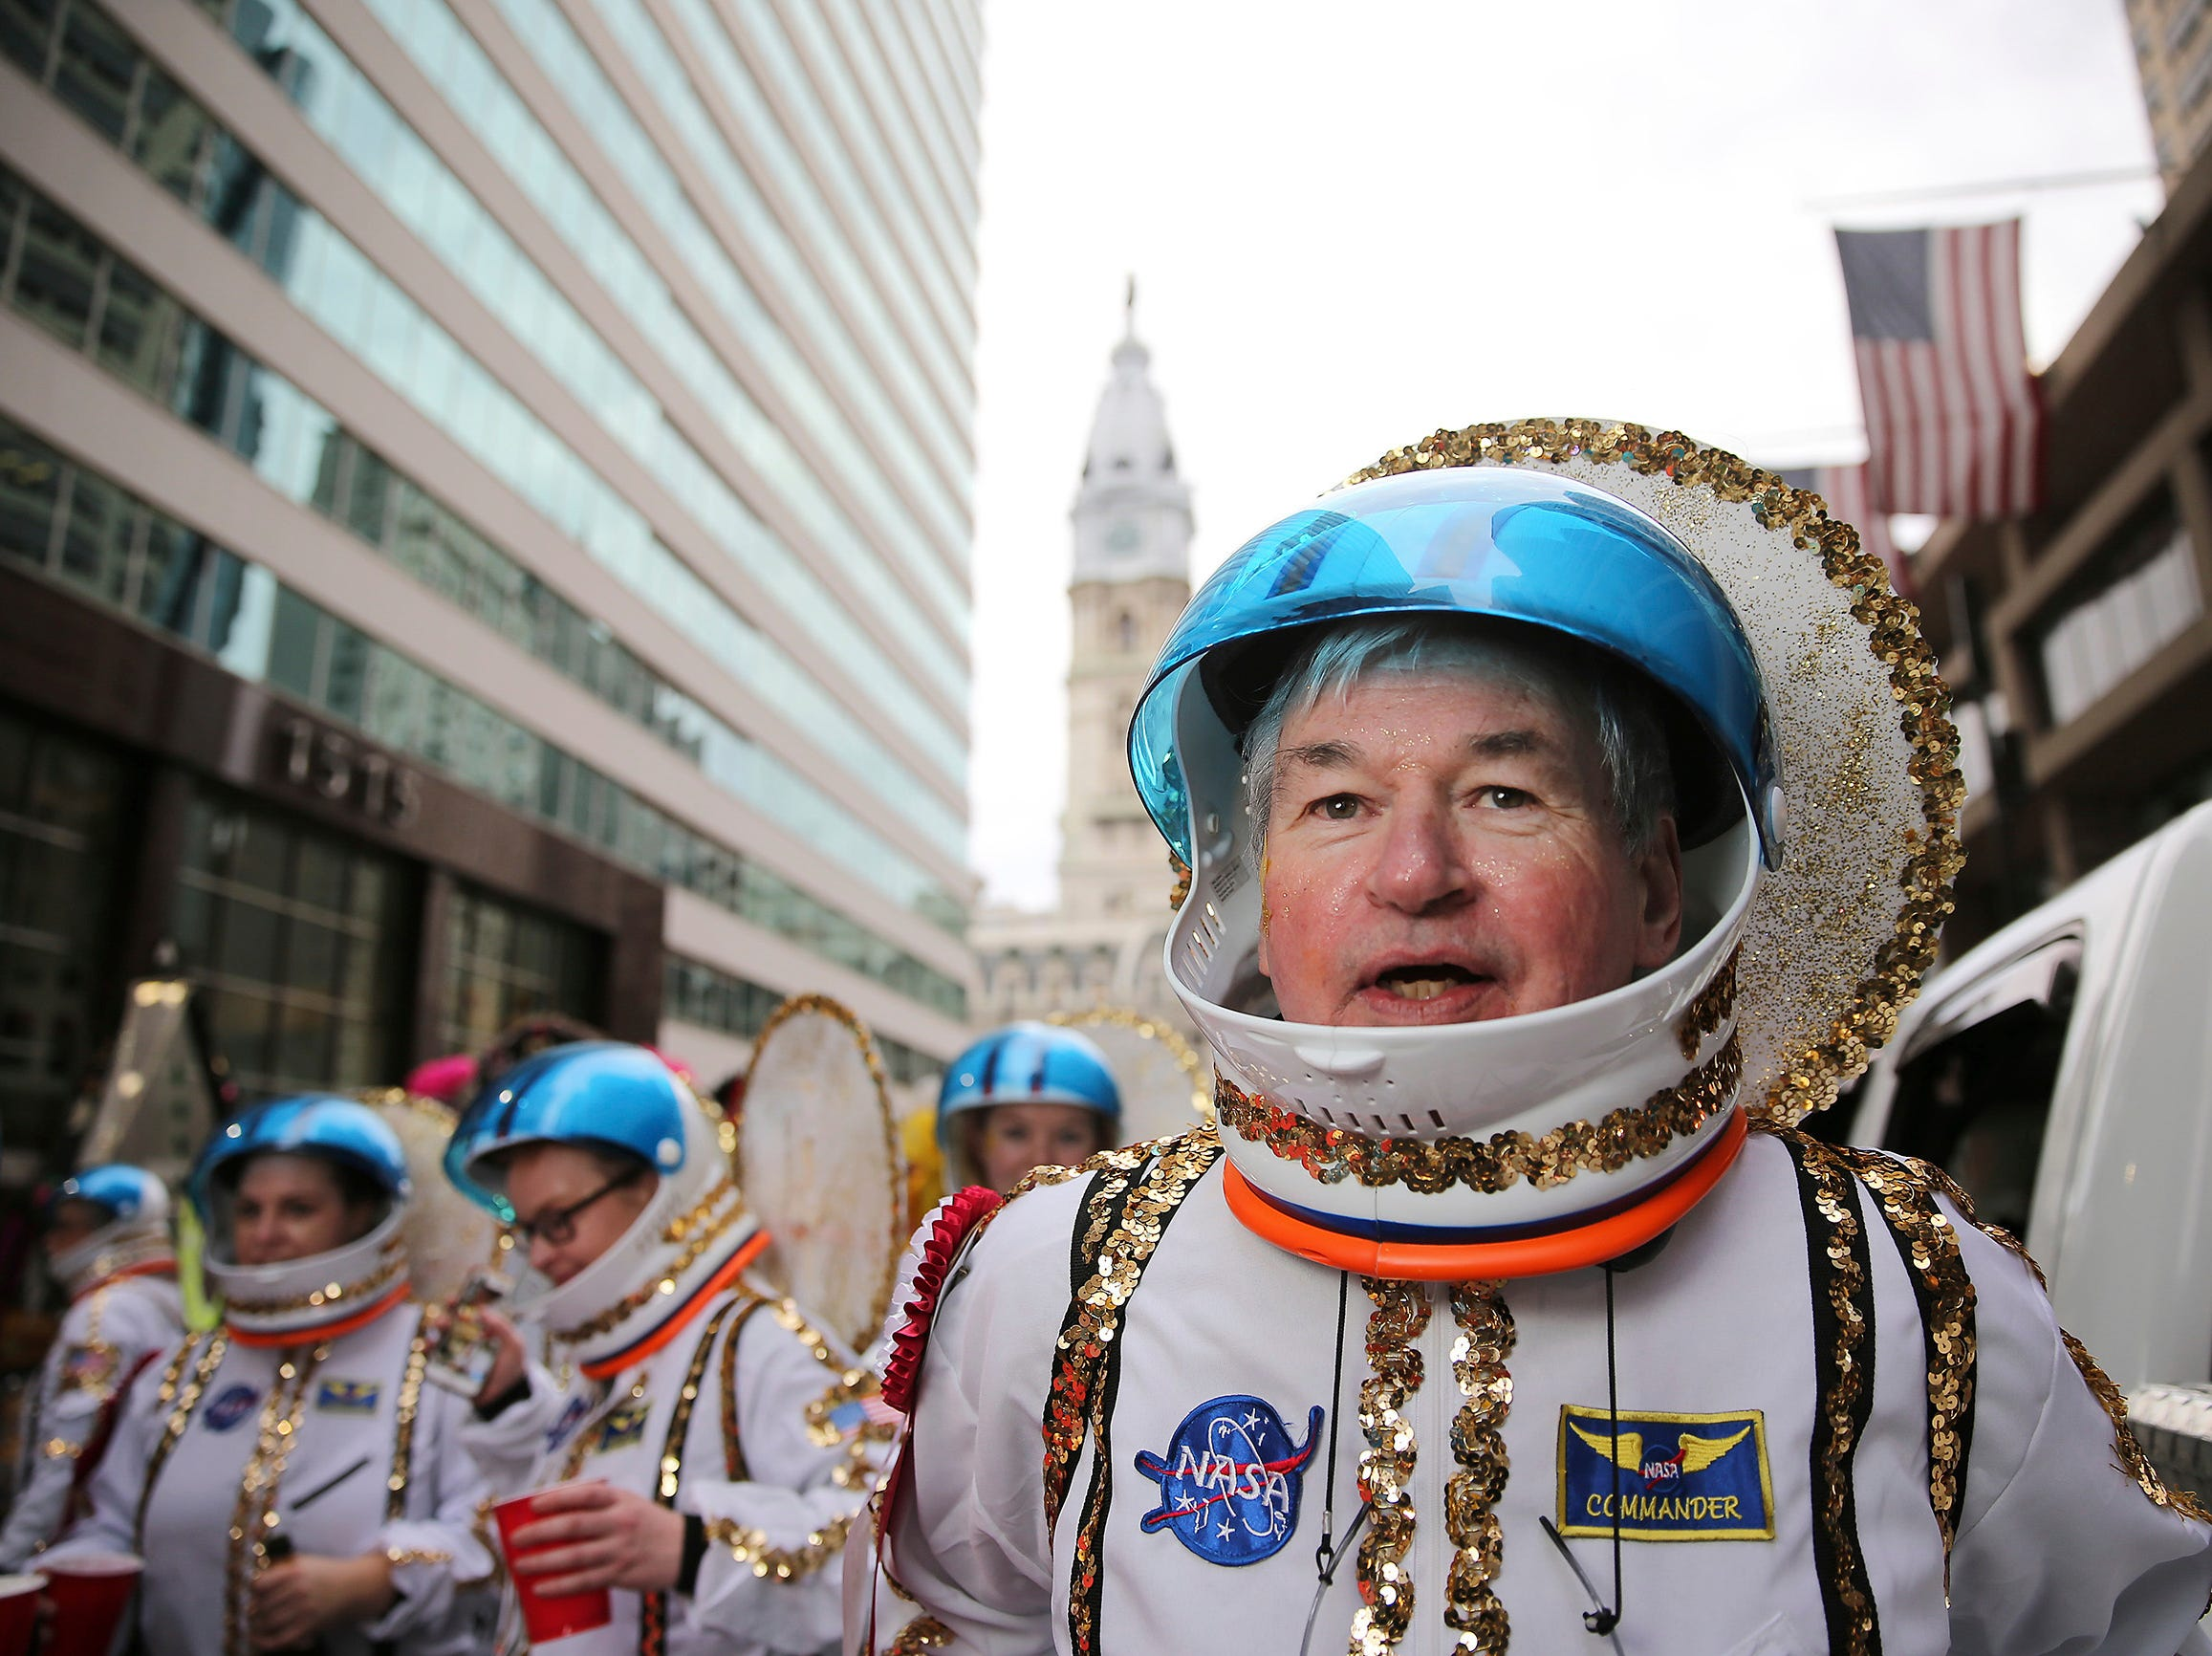 Harry Dougherty, of the Golden Sunrise Fancy Brigade, waits on the 1500 block of Market Street for the start of the Mummers Parade, Tuesday, Jan. 1, 2019, in Philadelphia. (David Maialetti/The Philadelphia Inquirer via AP)